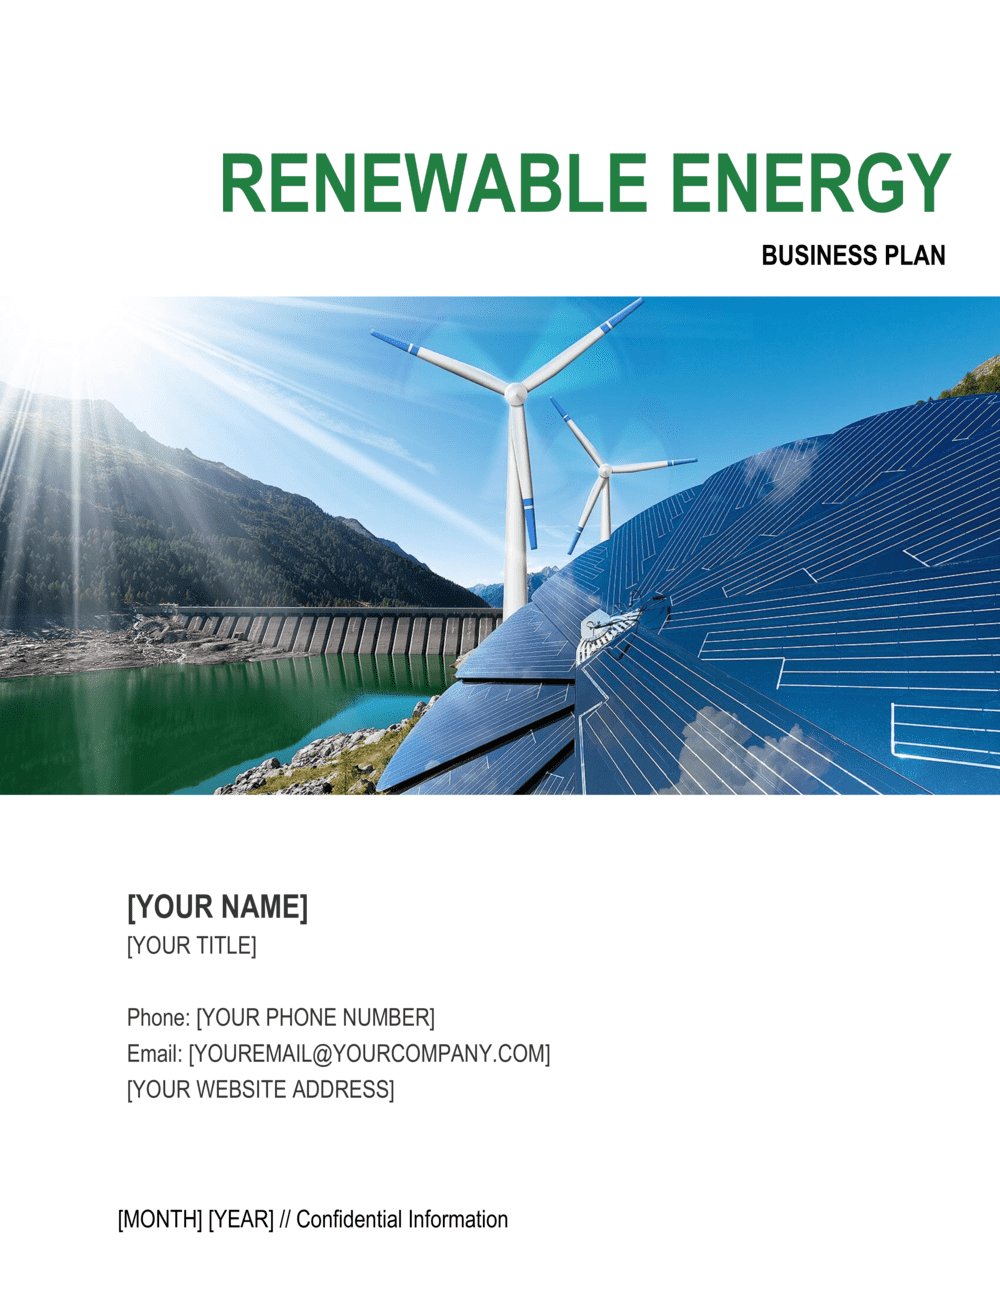 Business-in-a-Box's Renewable Energy Business Plan Template